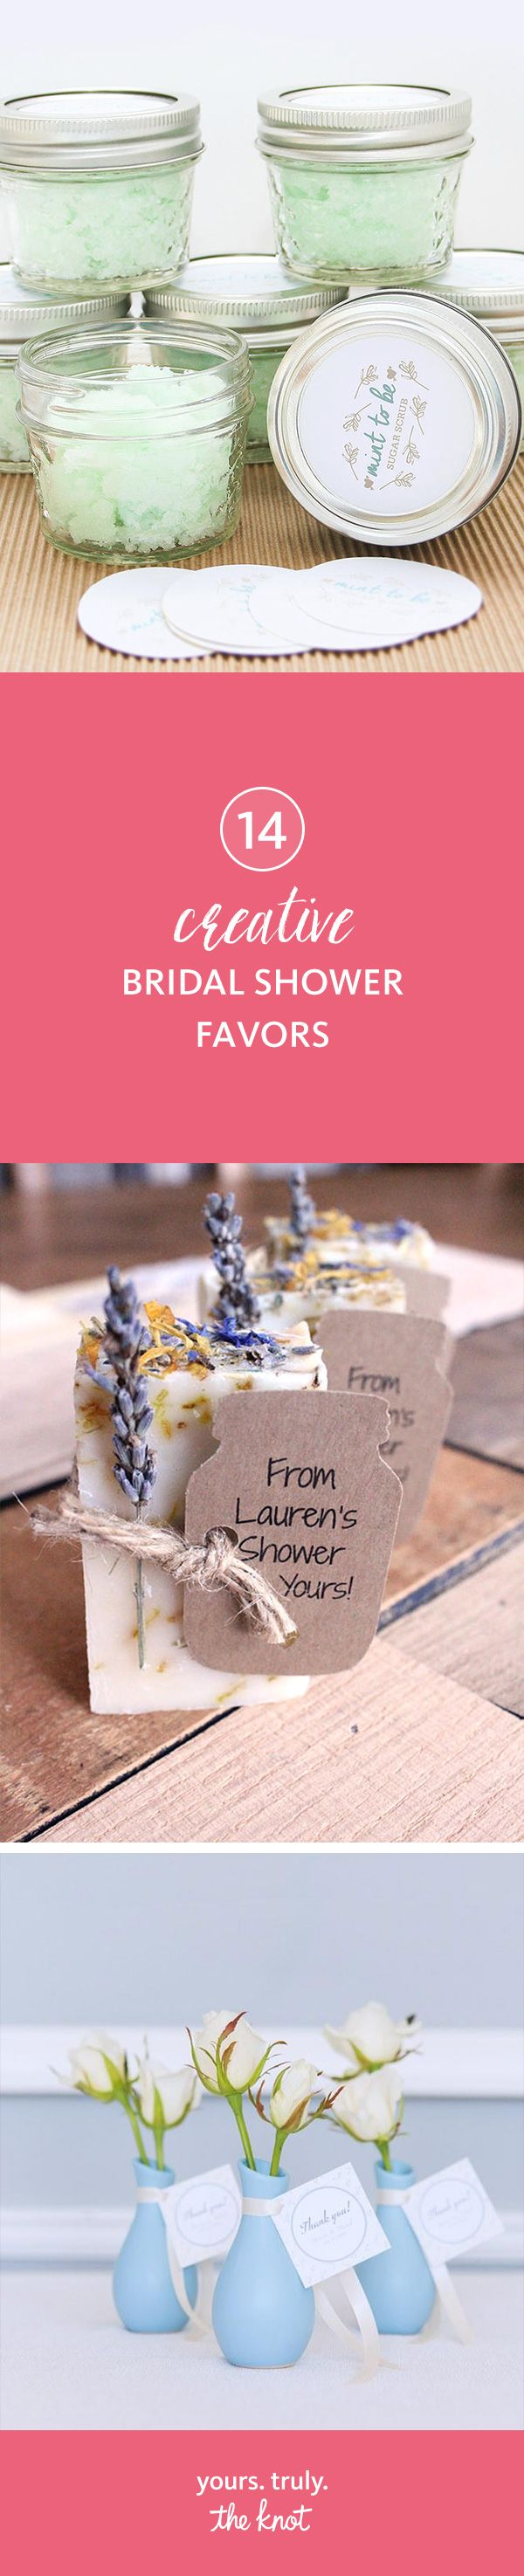 words to write in wedding shower card%0A    Creative Bridal Shower Favors